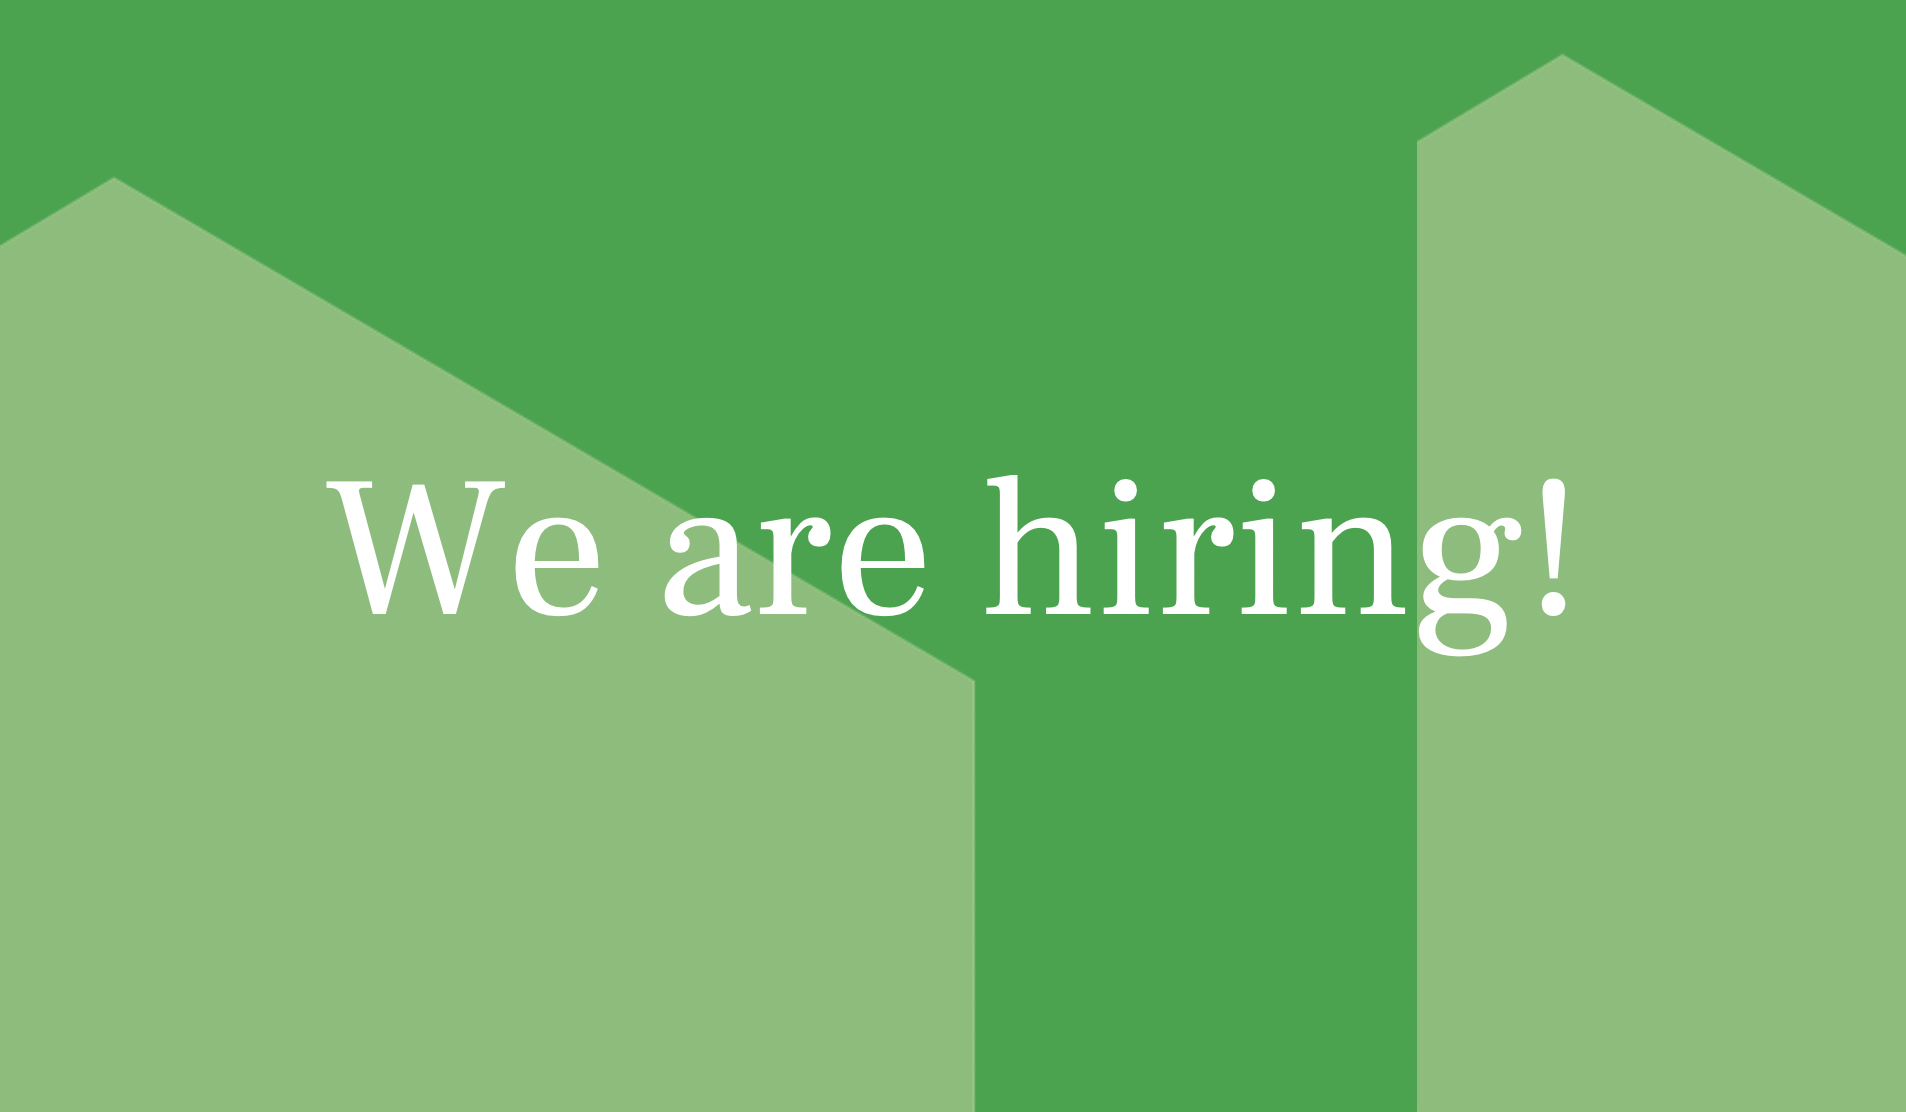 Design South East – Design South East are hiring for a Head of Programmes